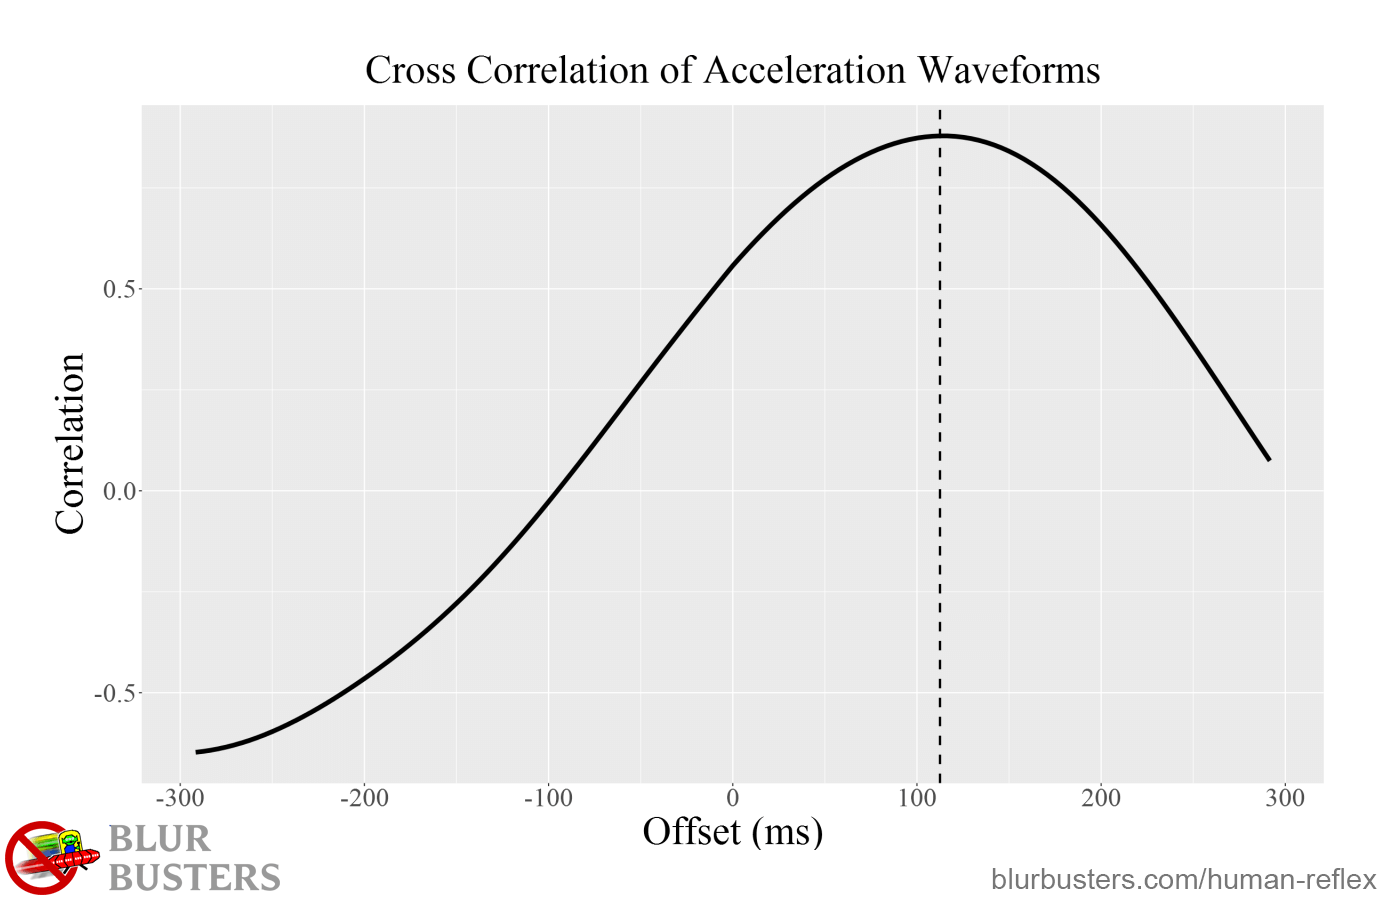 Blur Buster's Input Lag and the Limits of Human Reflex: Cross Correlation of Acceleration Waveform